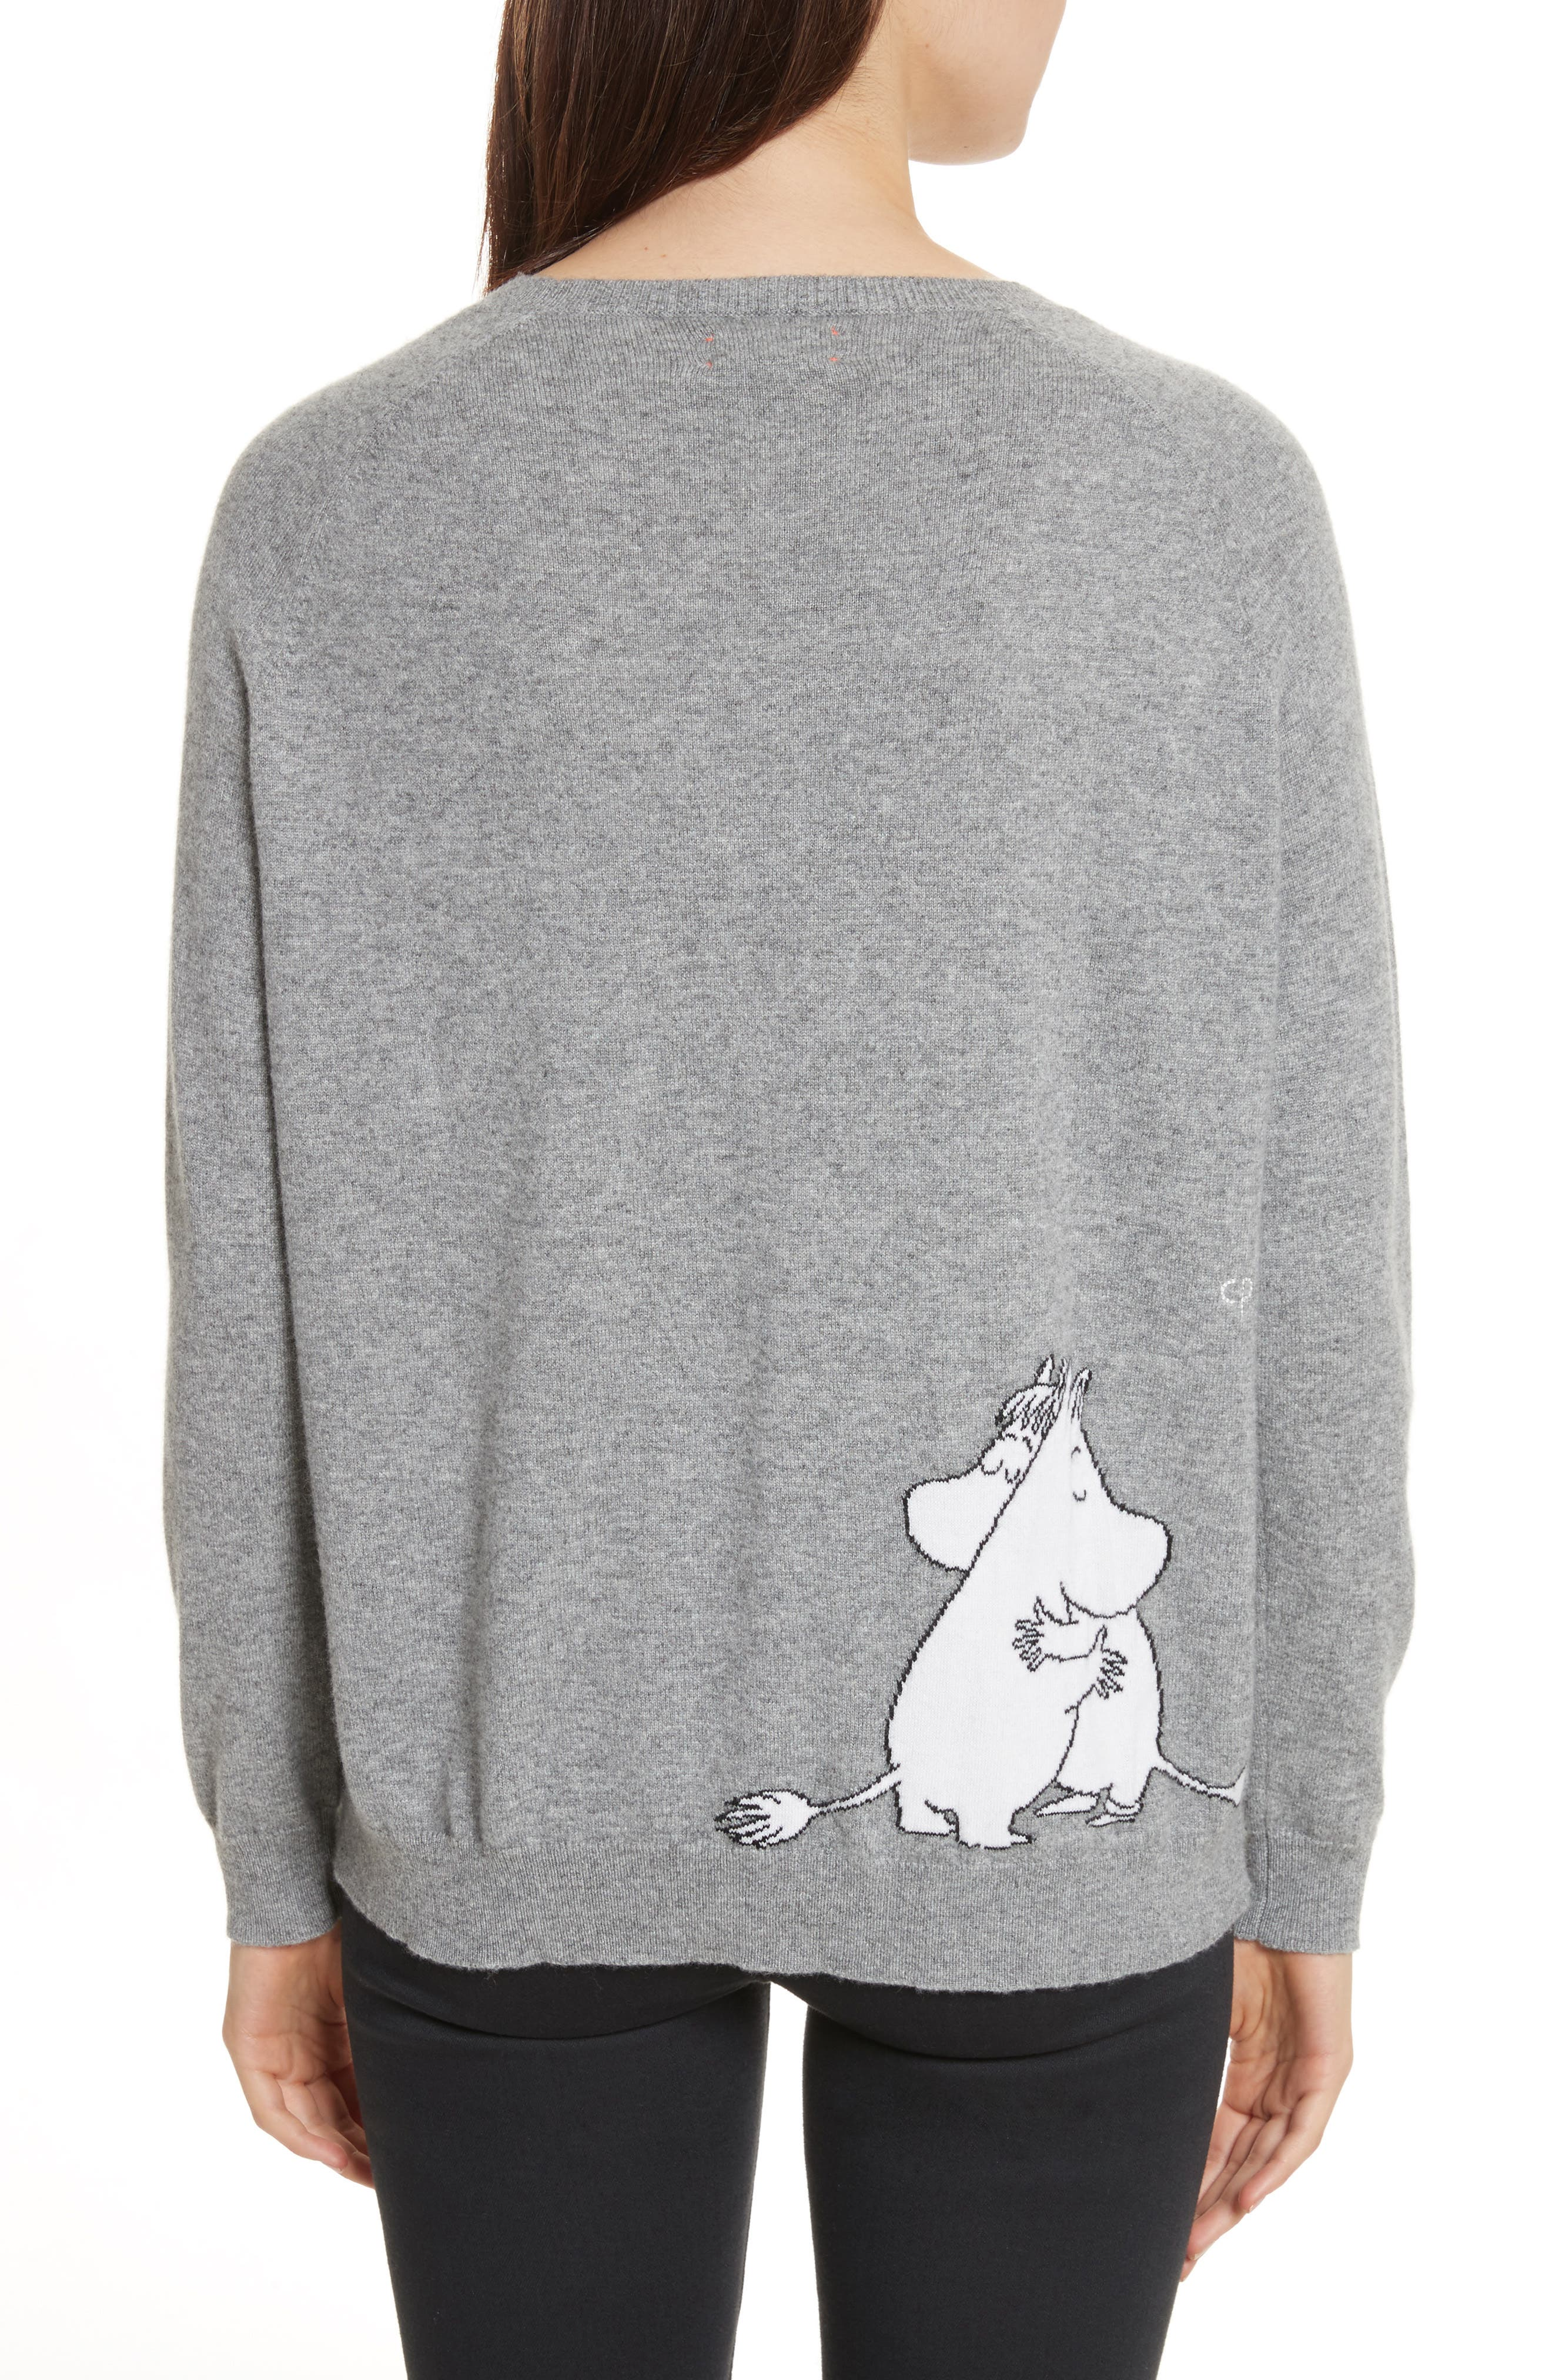 CHINTI & PARKER Just Imagine Moomin Cashmere Sweater,                             Alternate thumbnail 2, color,                             Grey